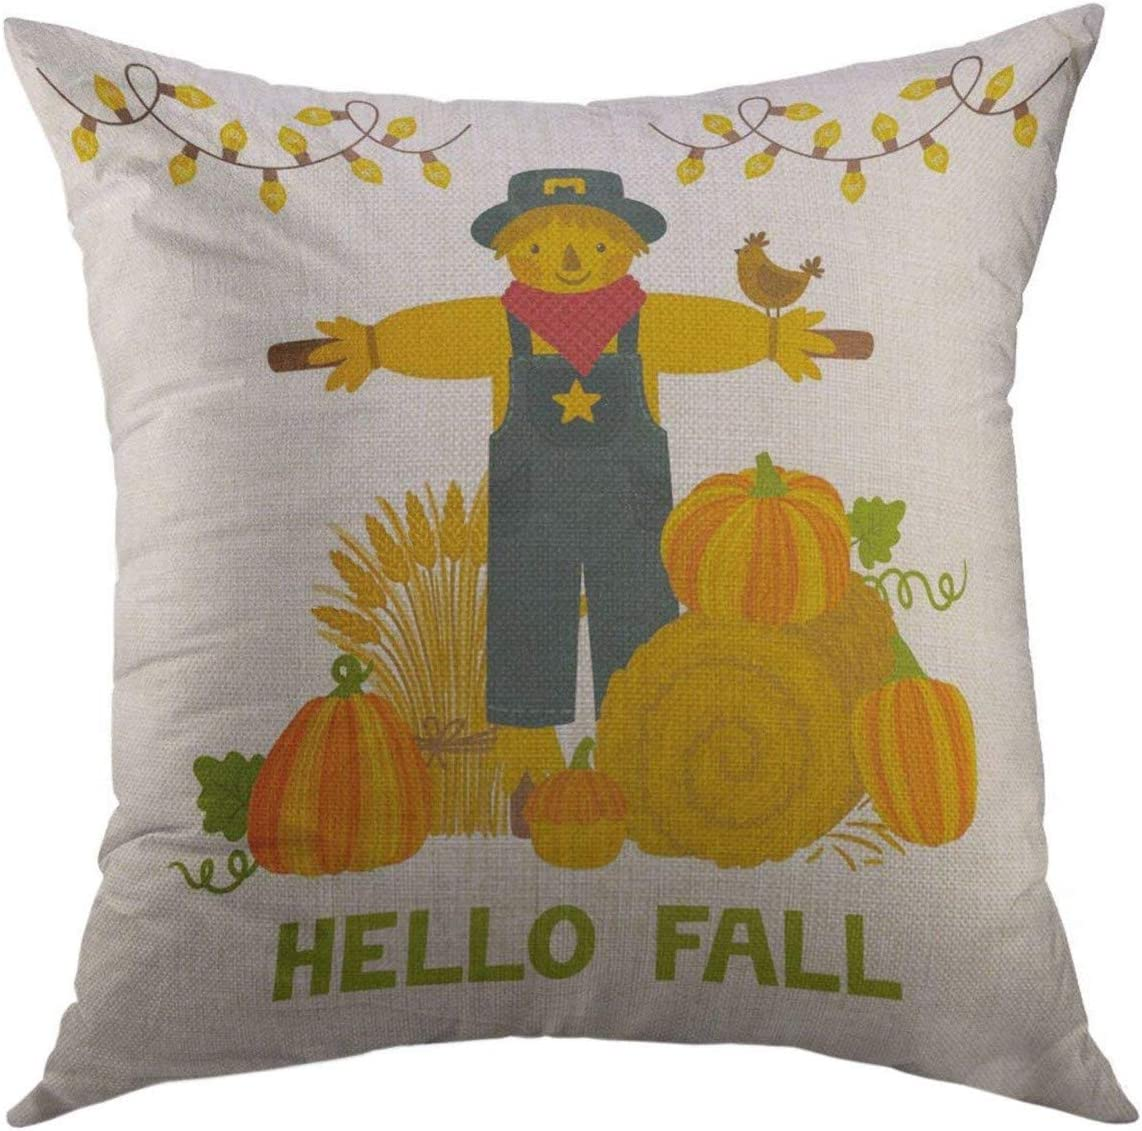 Mugod Decorative Throw Pillow Cover for Couch Sofa,Autumn with Pumpkins Hay Bale Wheat Sheaf Scarecrow Text Hello Fall Bright Harvest Festival Home Decor Pillow case 18x18 Inch